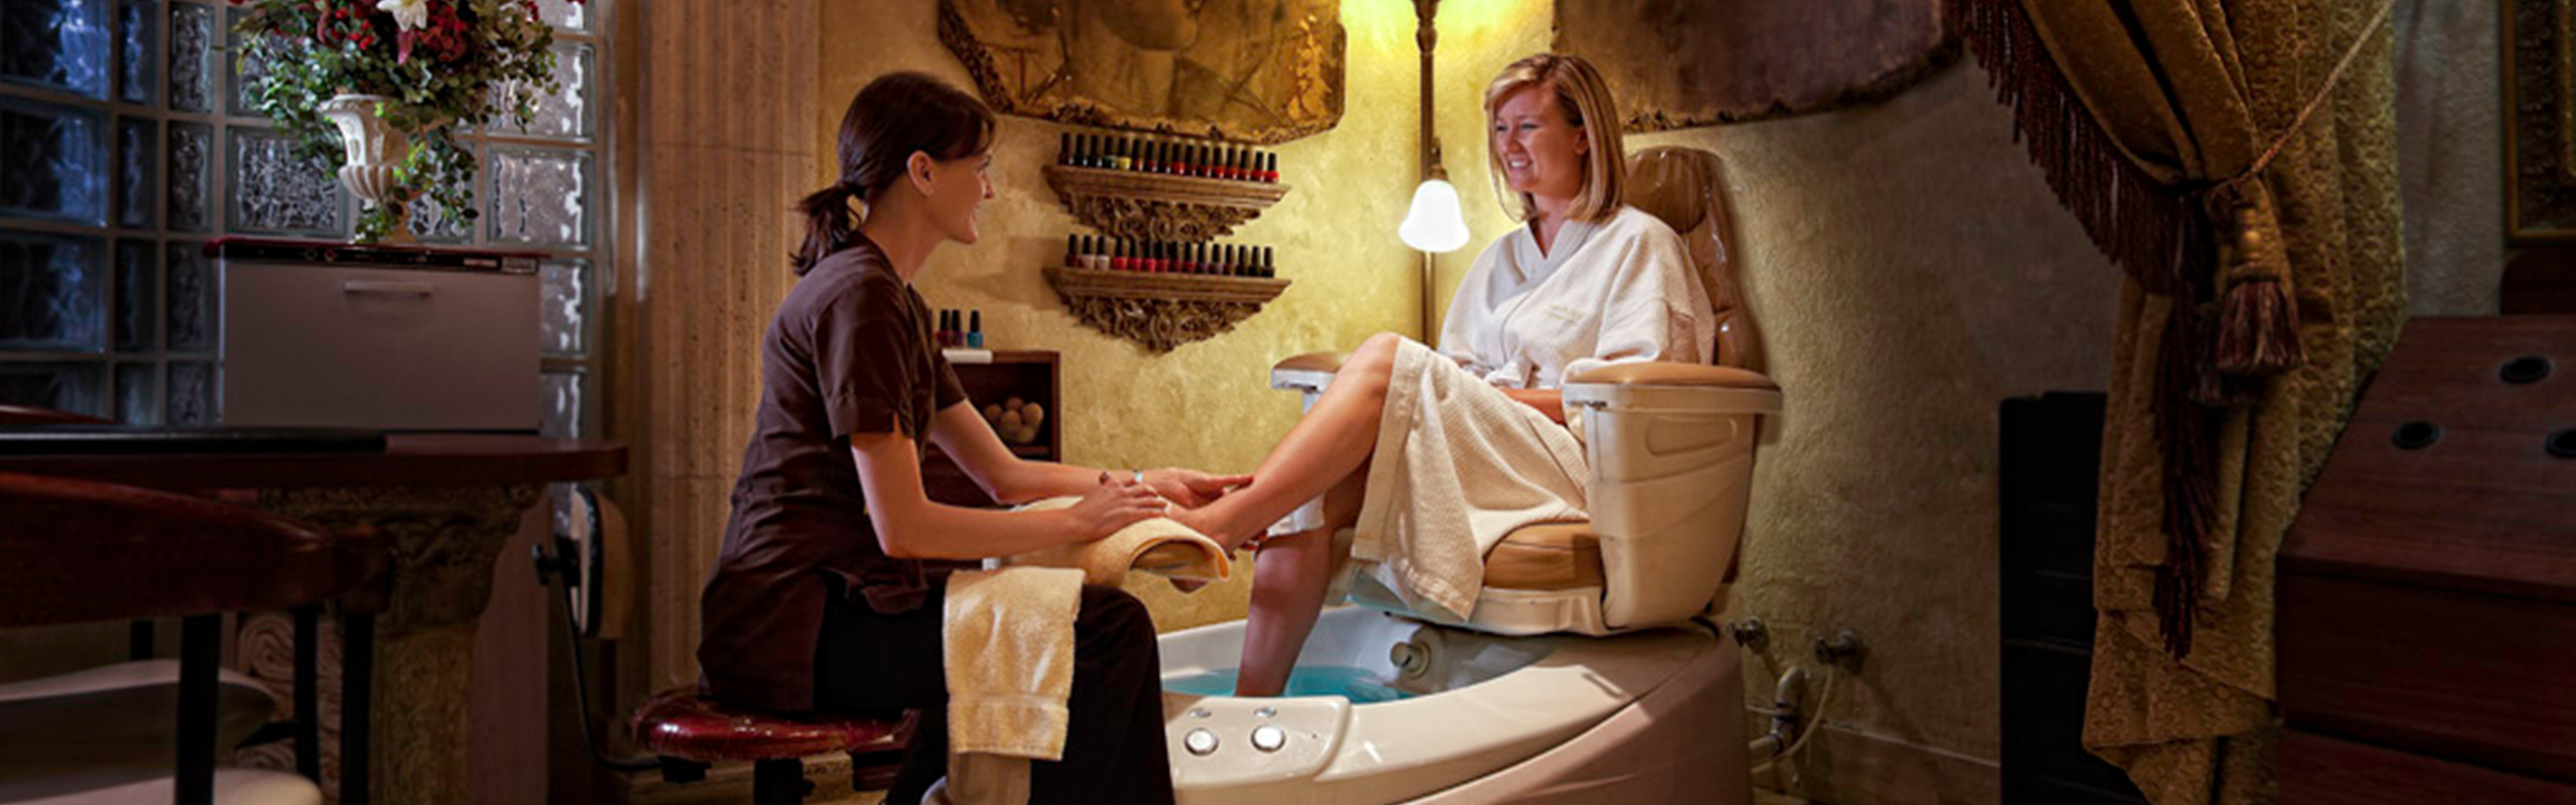 Serenity Spa at Westgate Lakes Resort in Orlando, FL